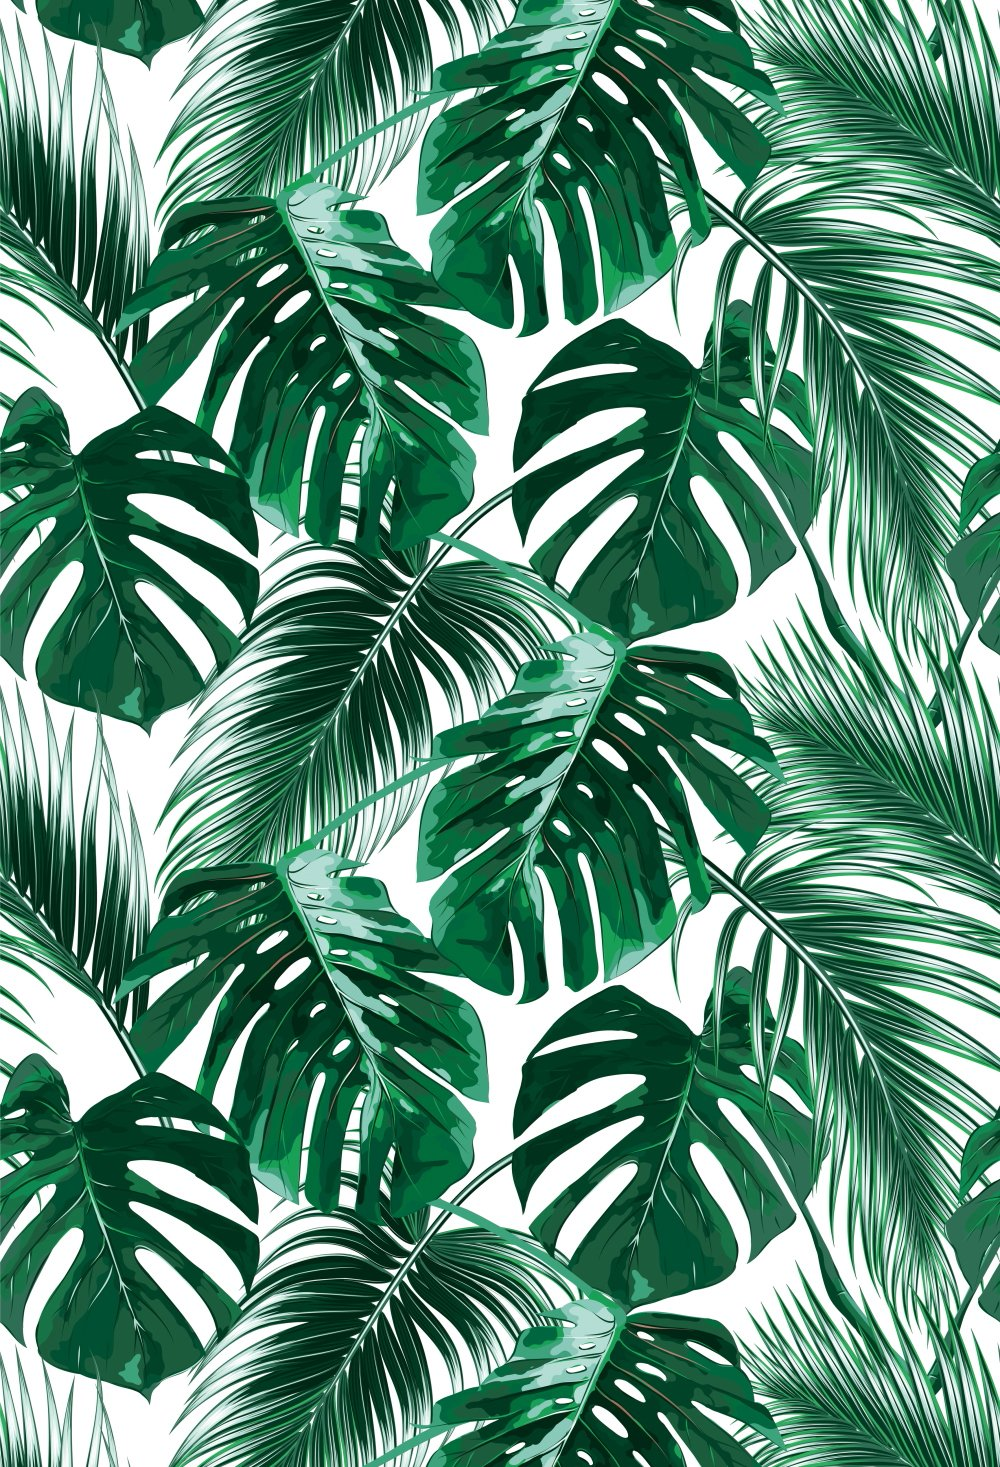 Muzi Tropical palm summer party Photography Backdrops Green Banana Leaves  Floral Wall Backdrop Wedding Stage Background Cotton Polyester Photo Studio